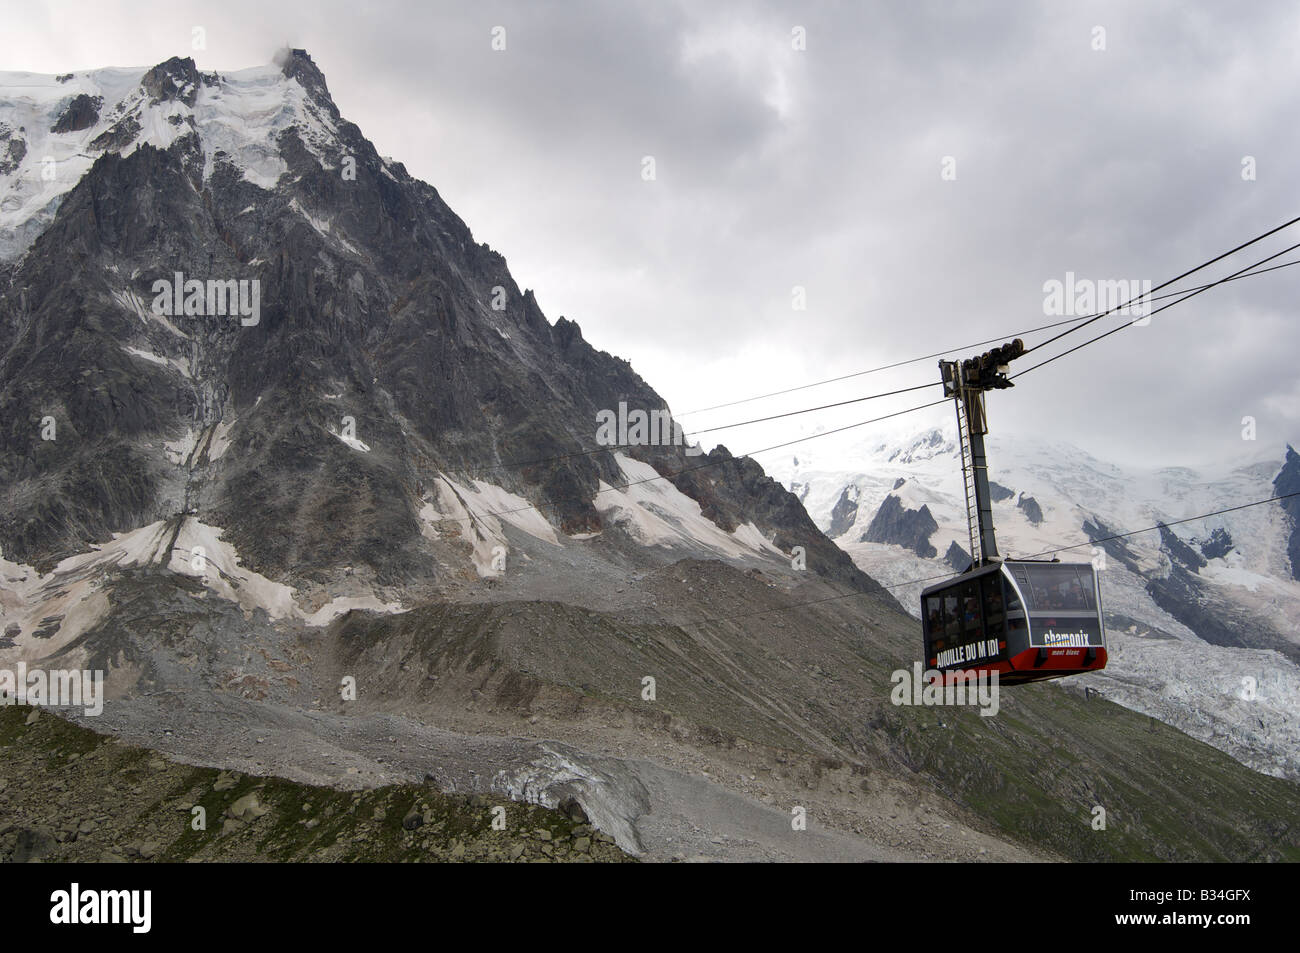 Aiguille Du Midi cable car, in bad weather, during th summer. - Stock Image